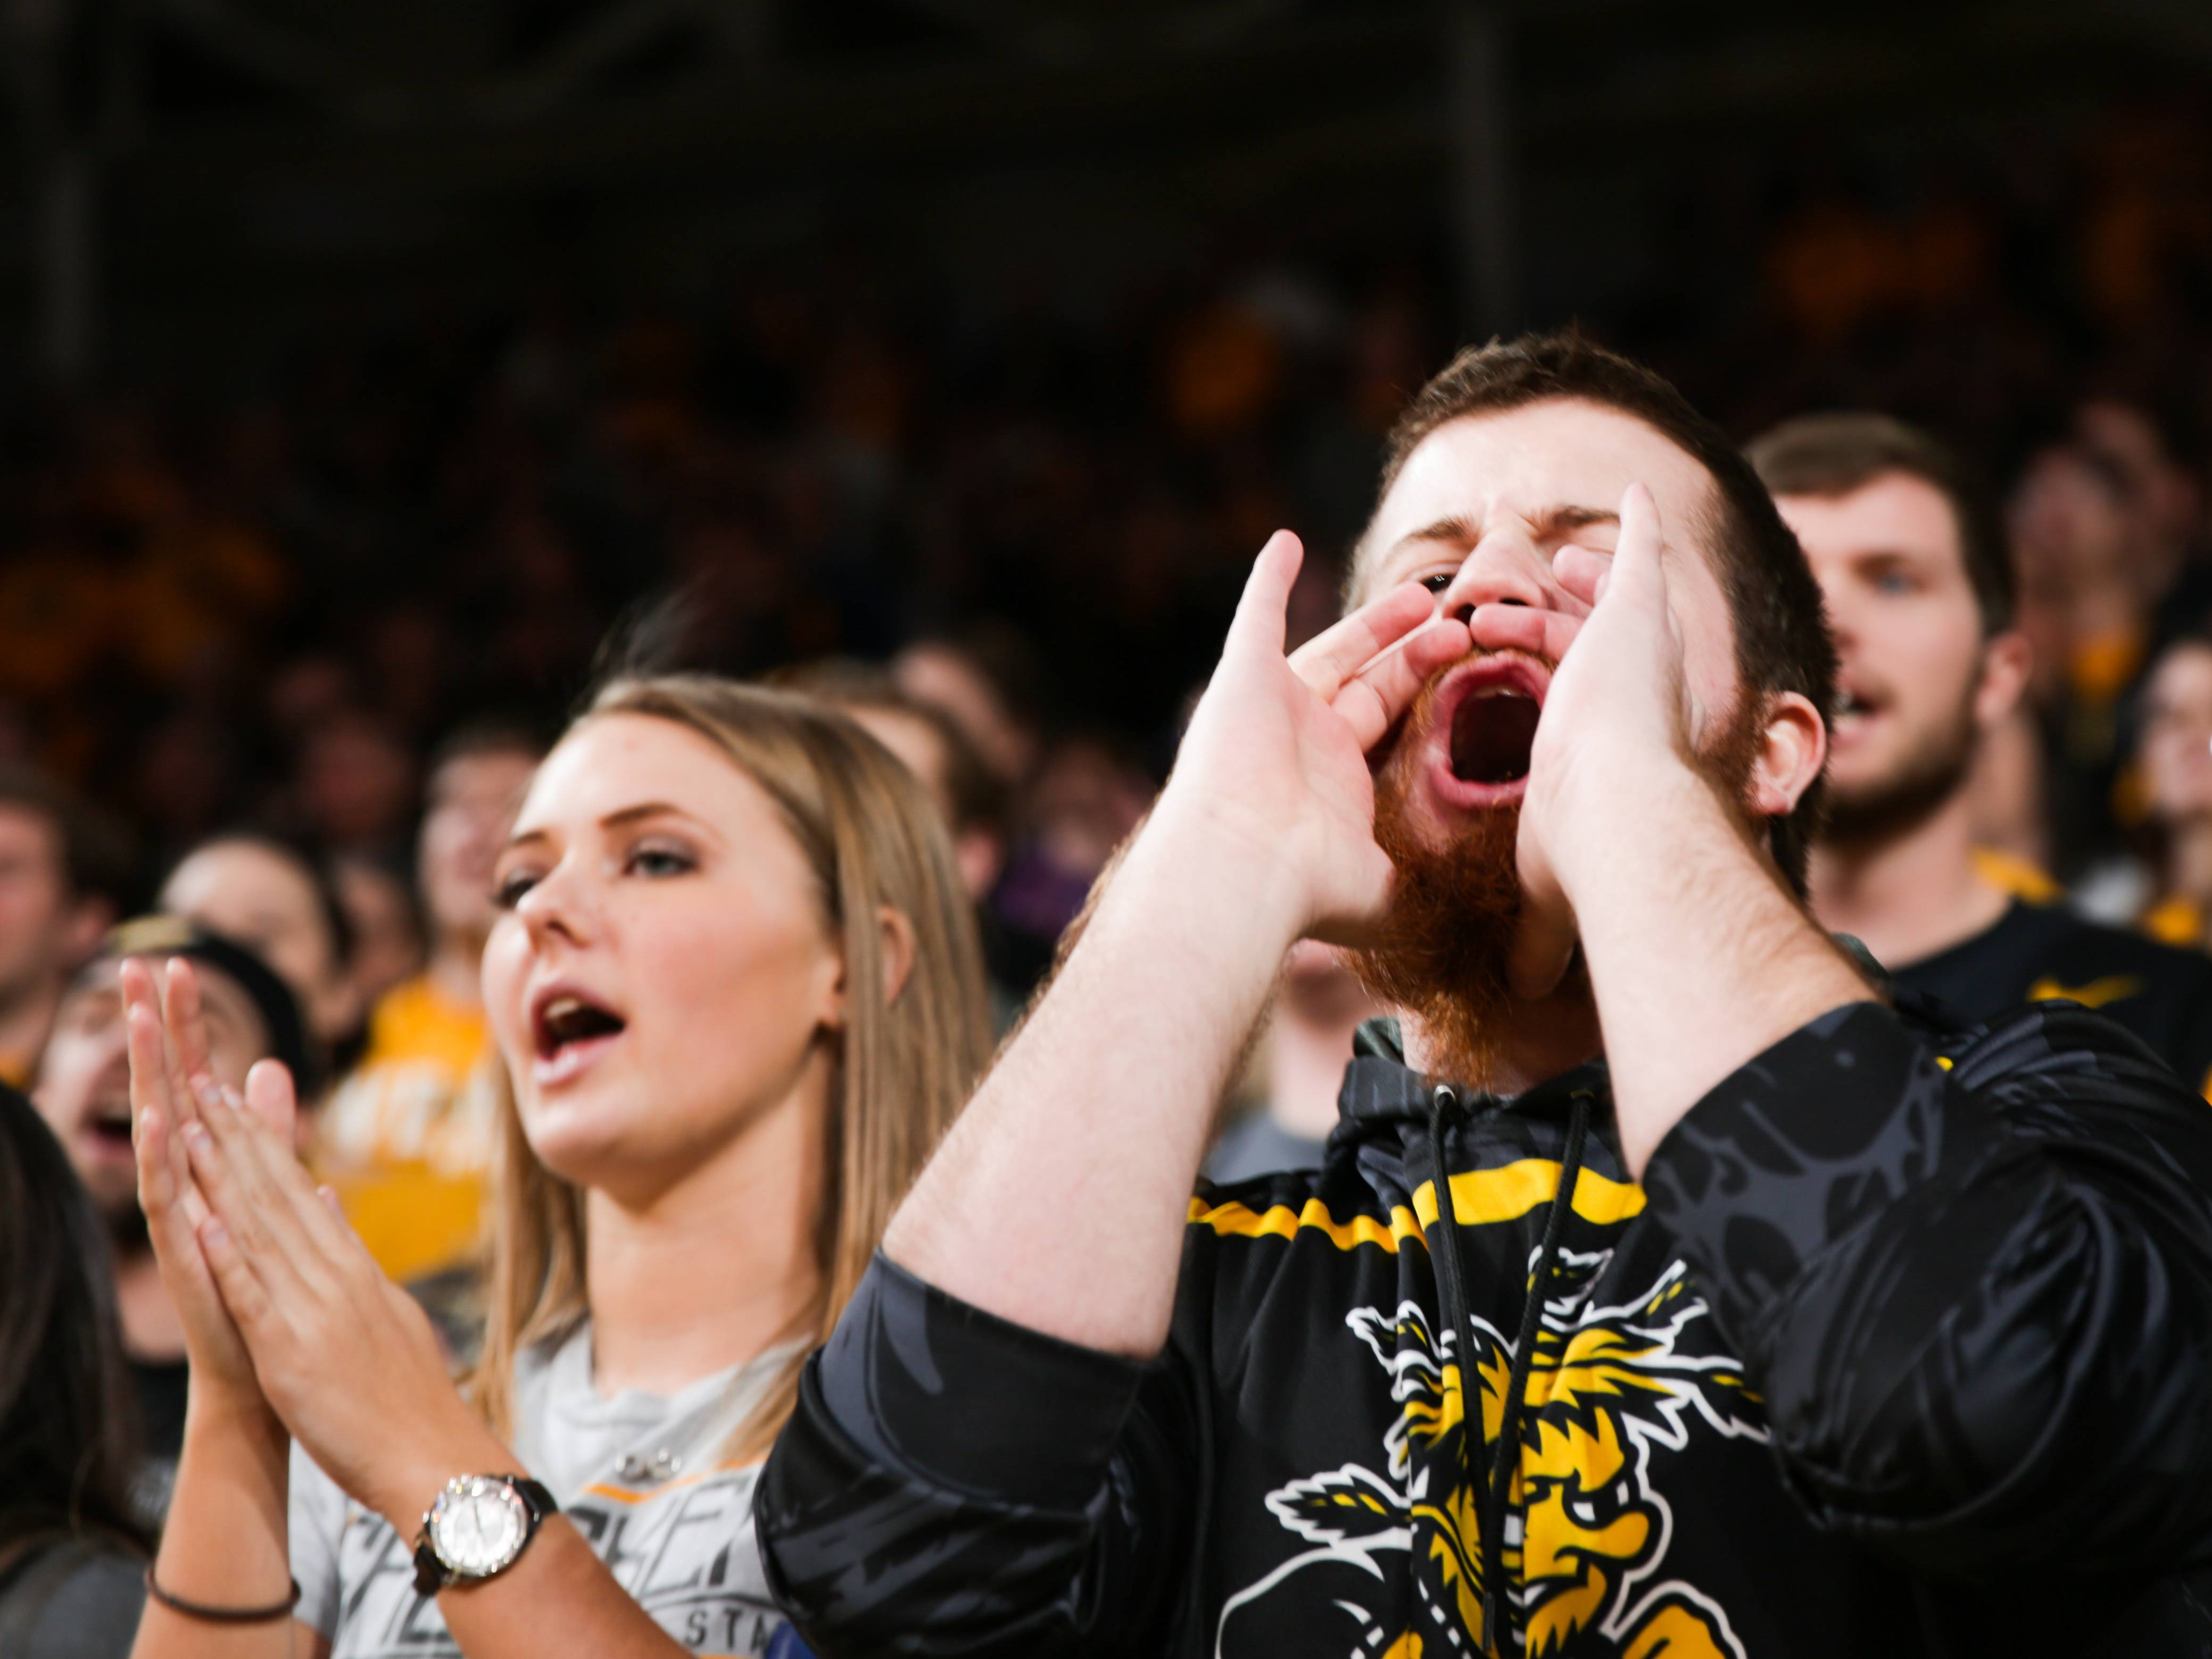 Shocker Basketball fans cheering.